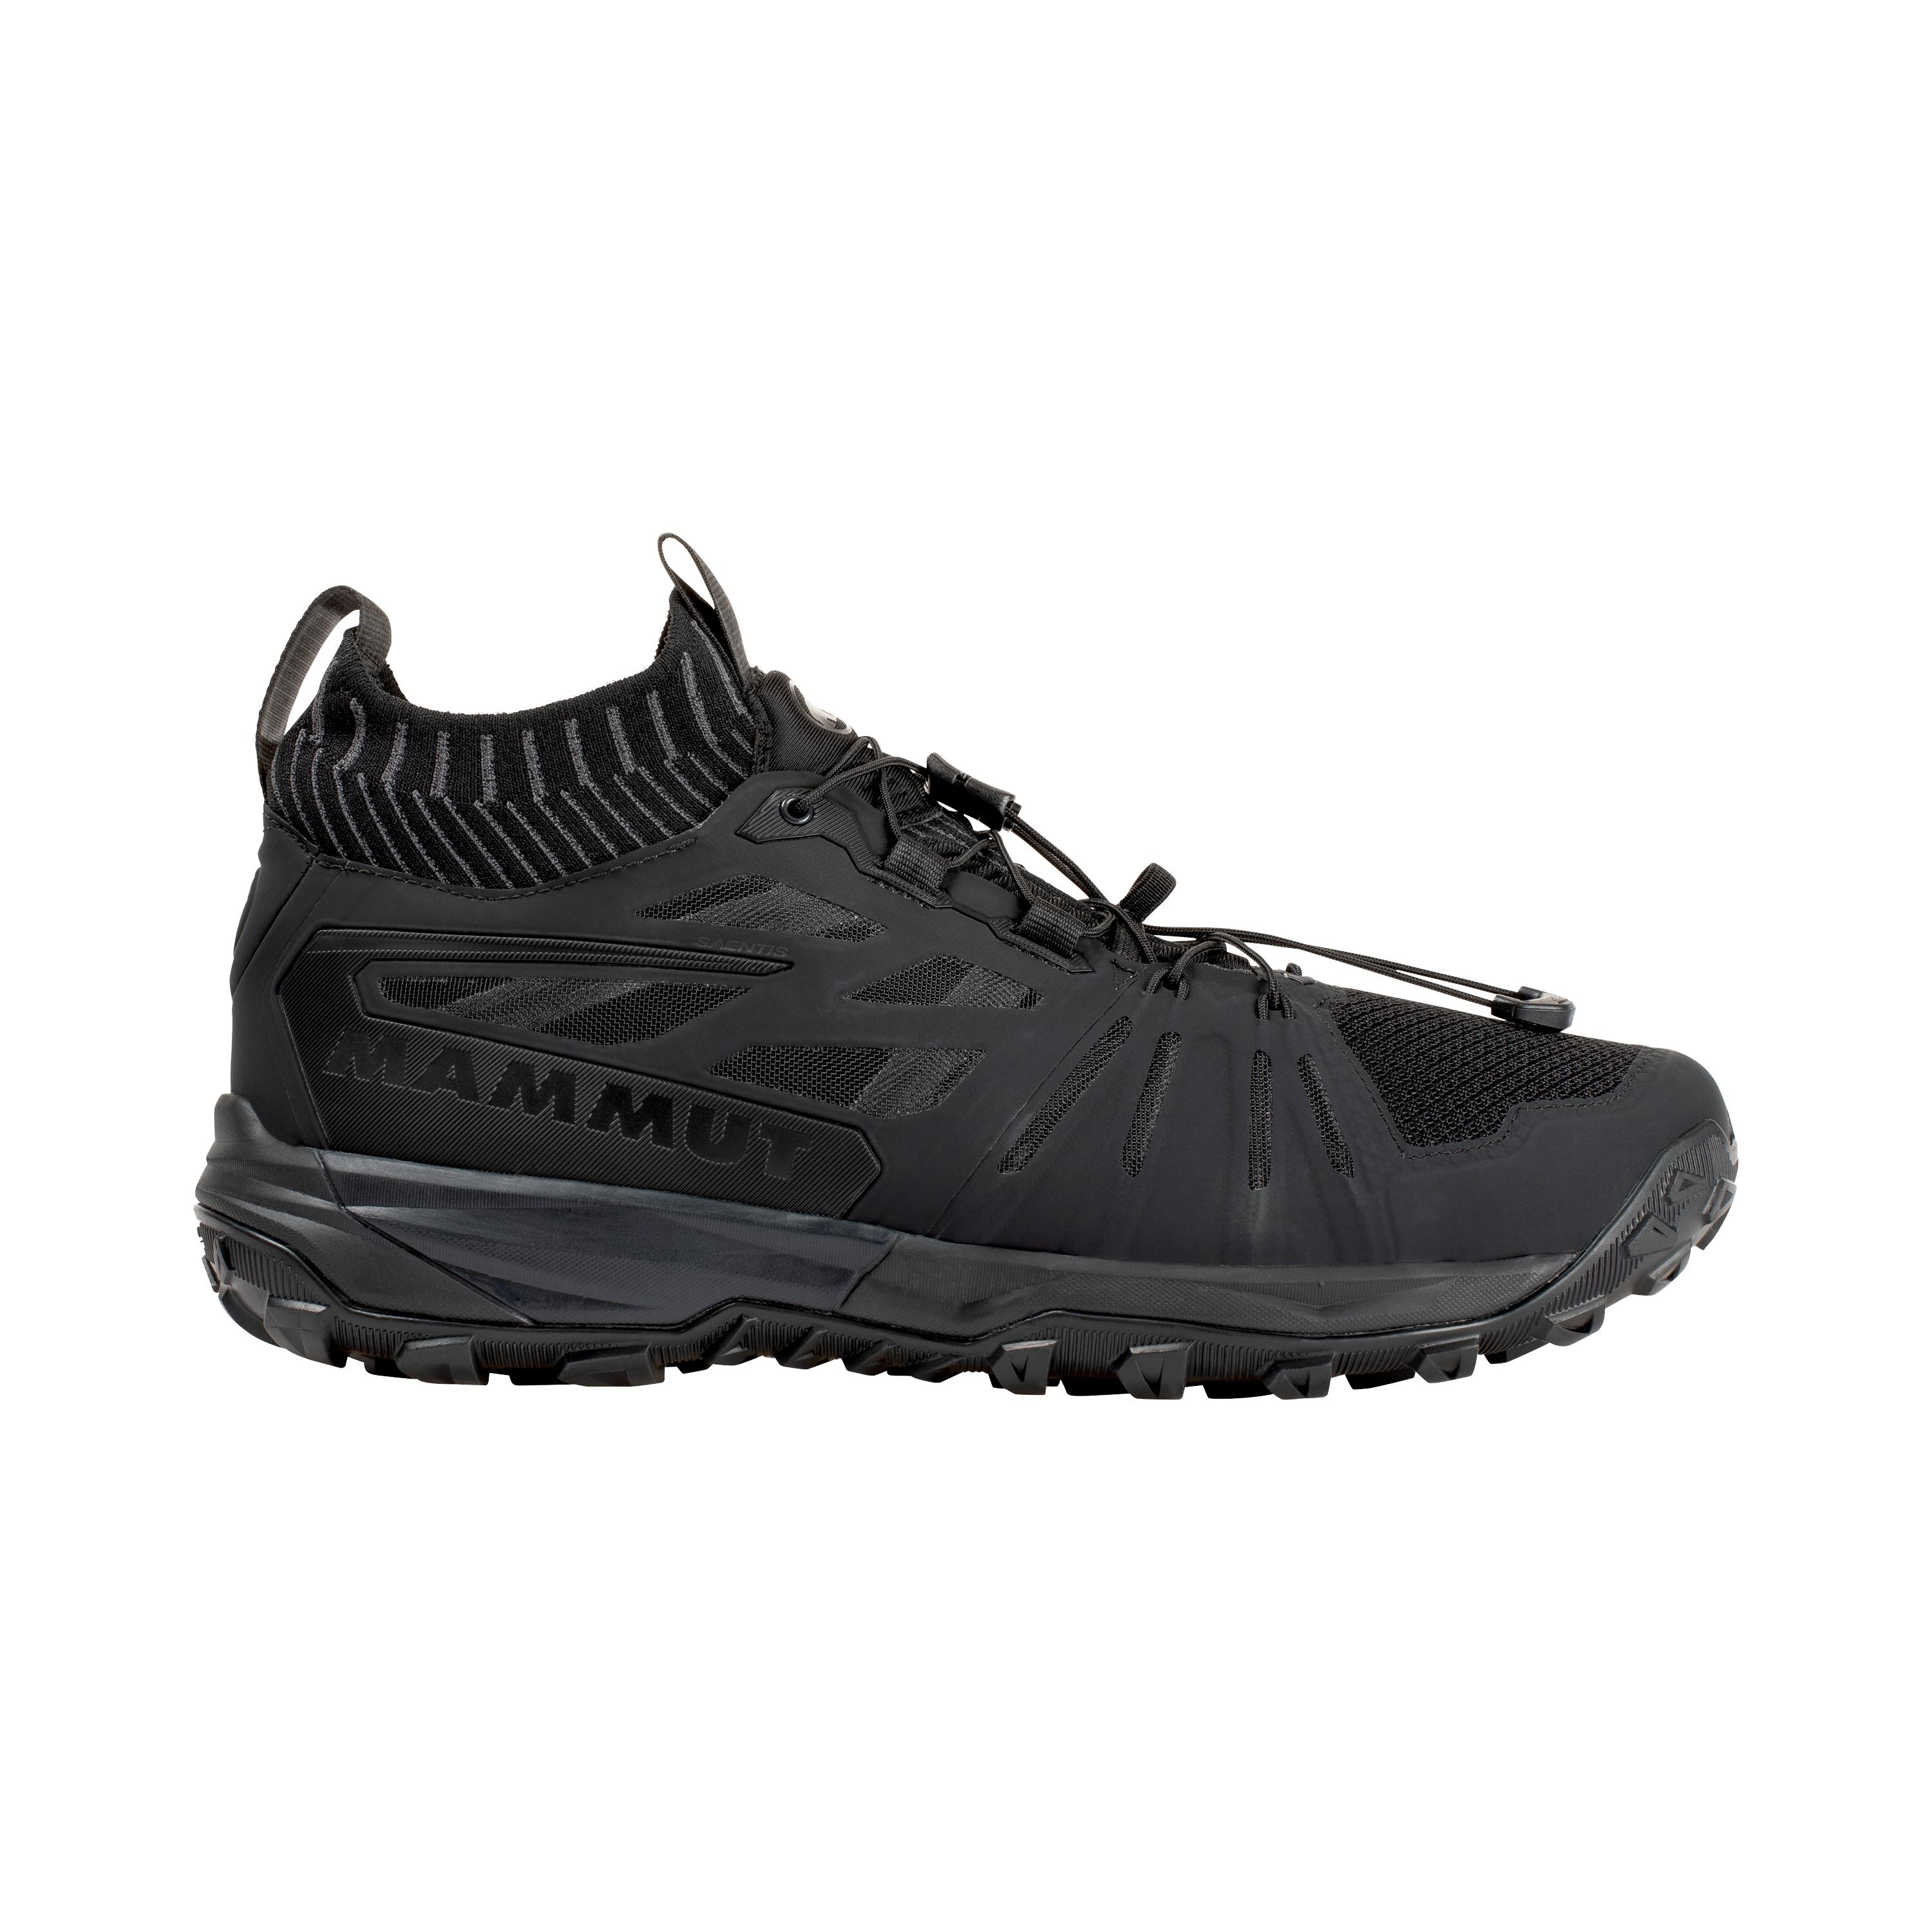 e29c9a5b505 Saentis Knit Low Men in 2019 | Footwear | Running shoes for men ...